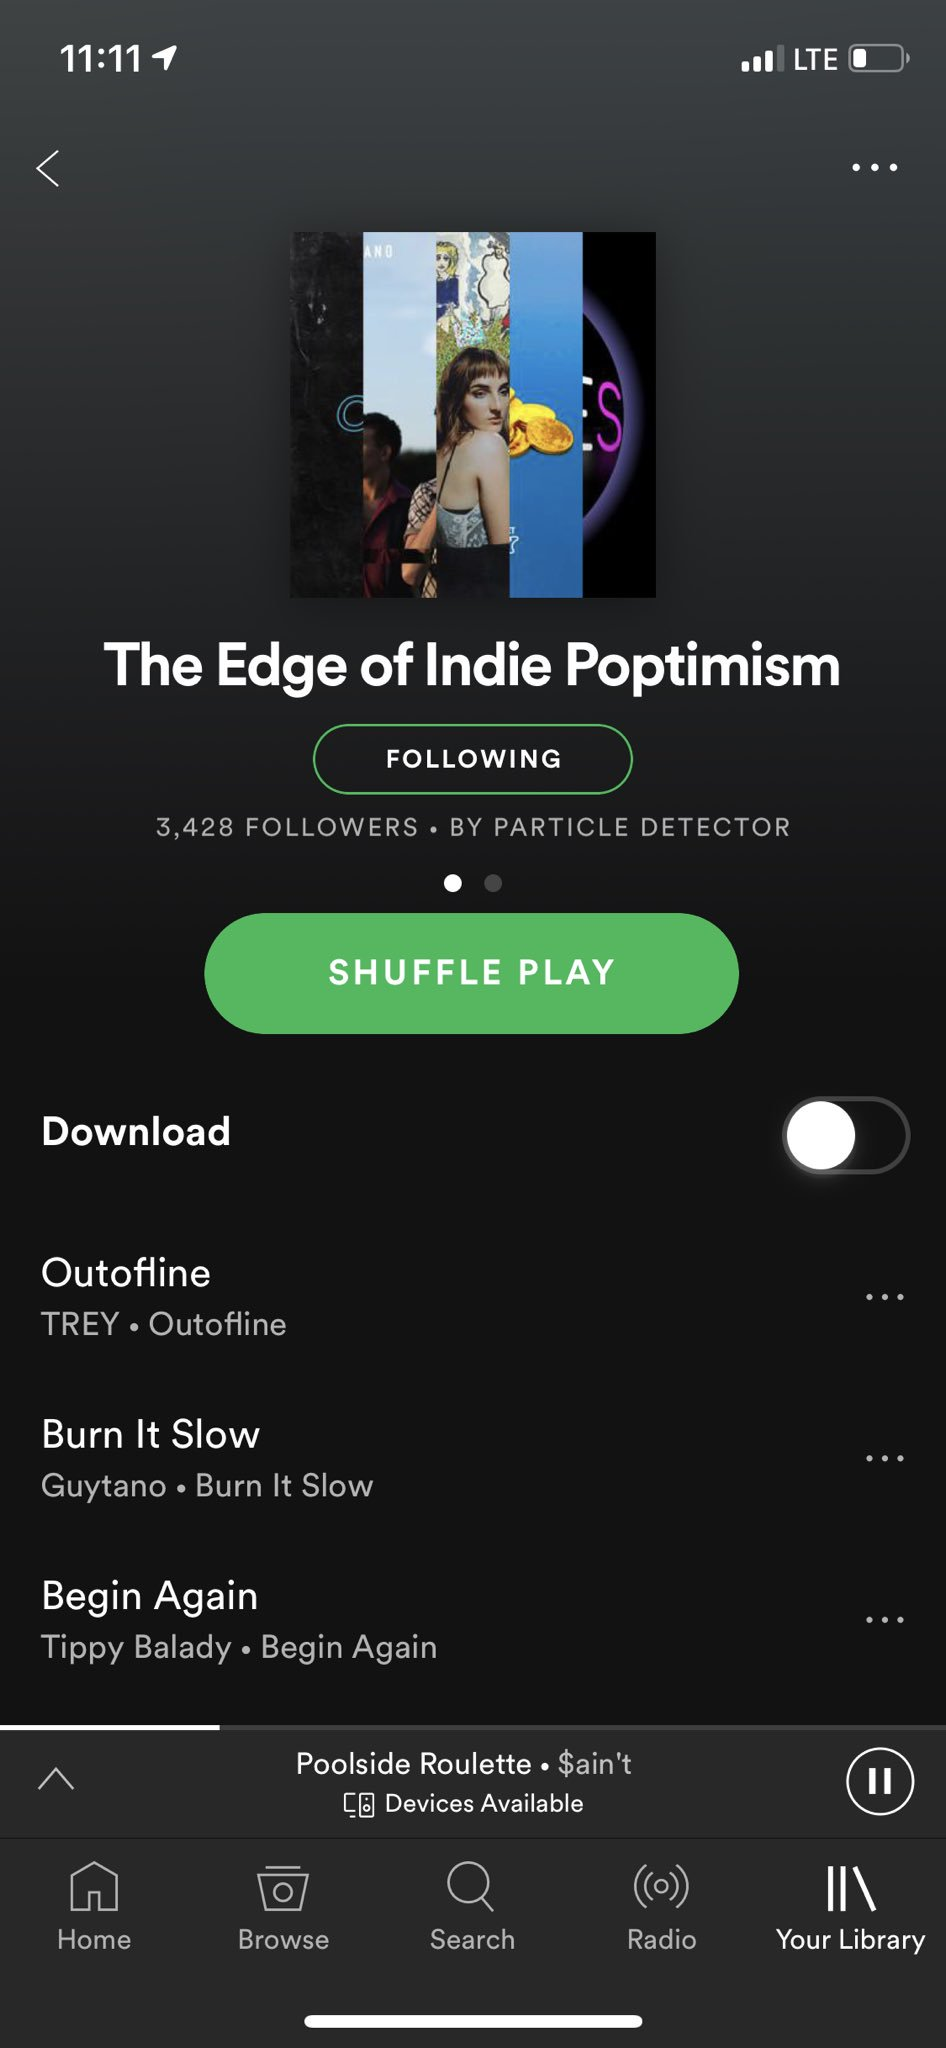 Spotify just really knows me…  https://t.co/ldgtAI8sh1…